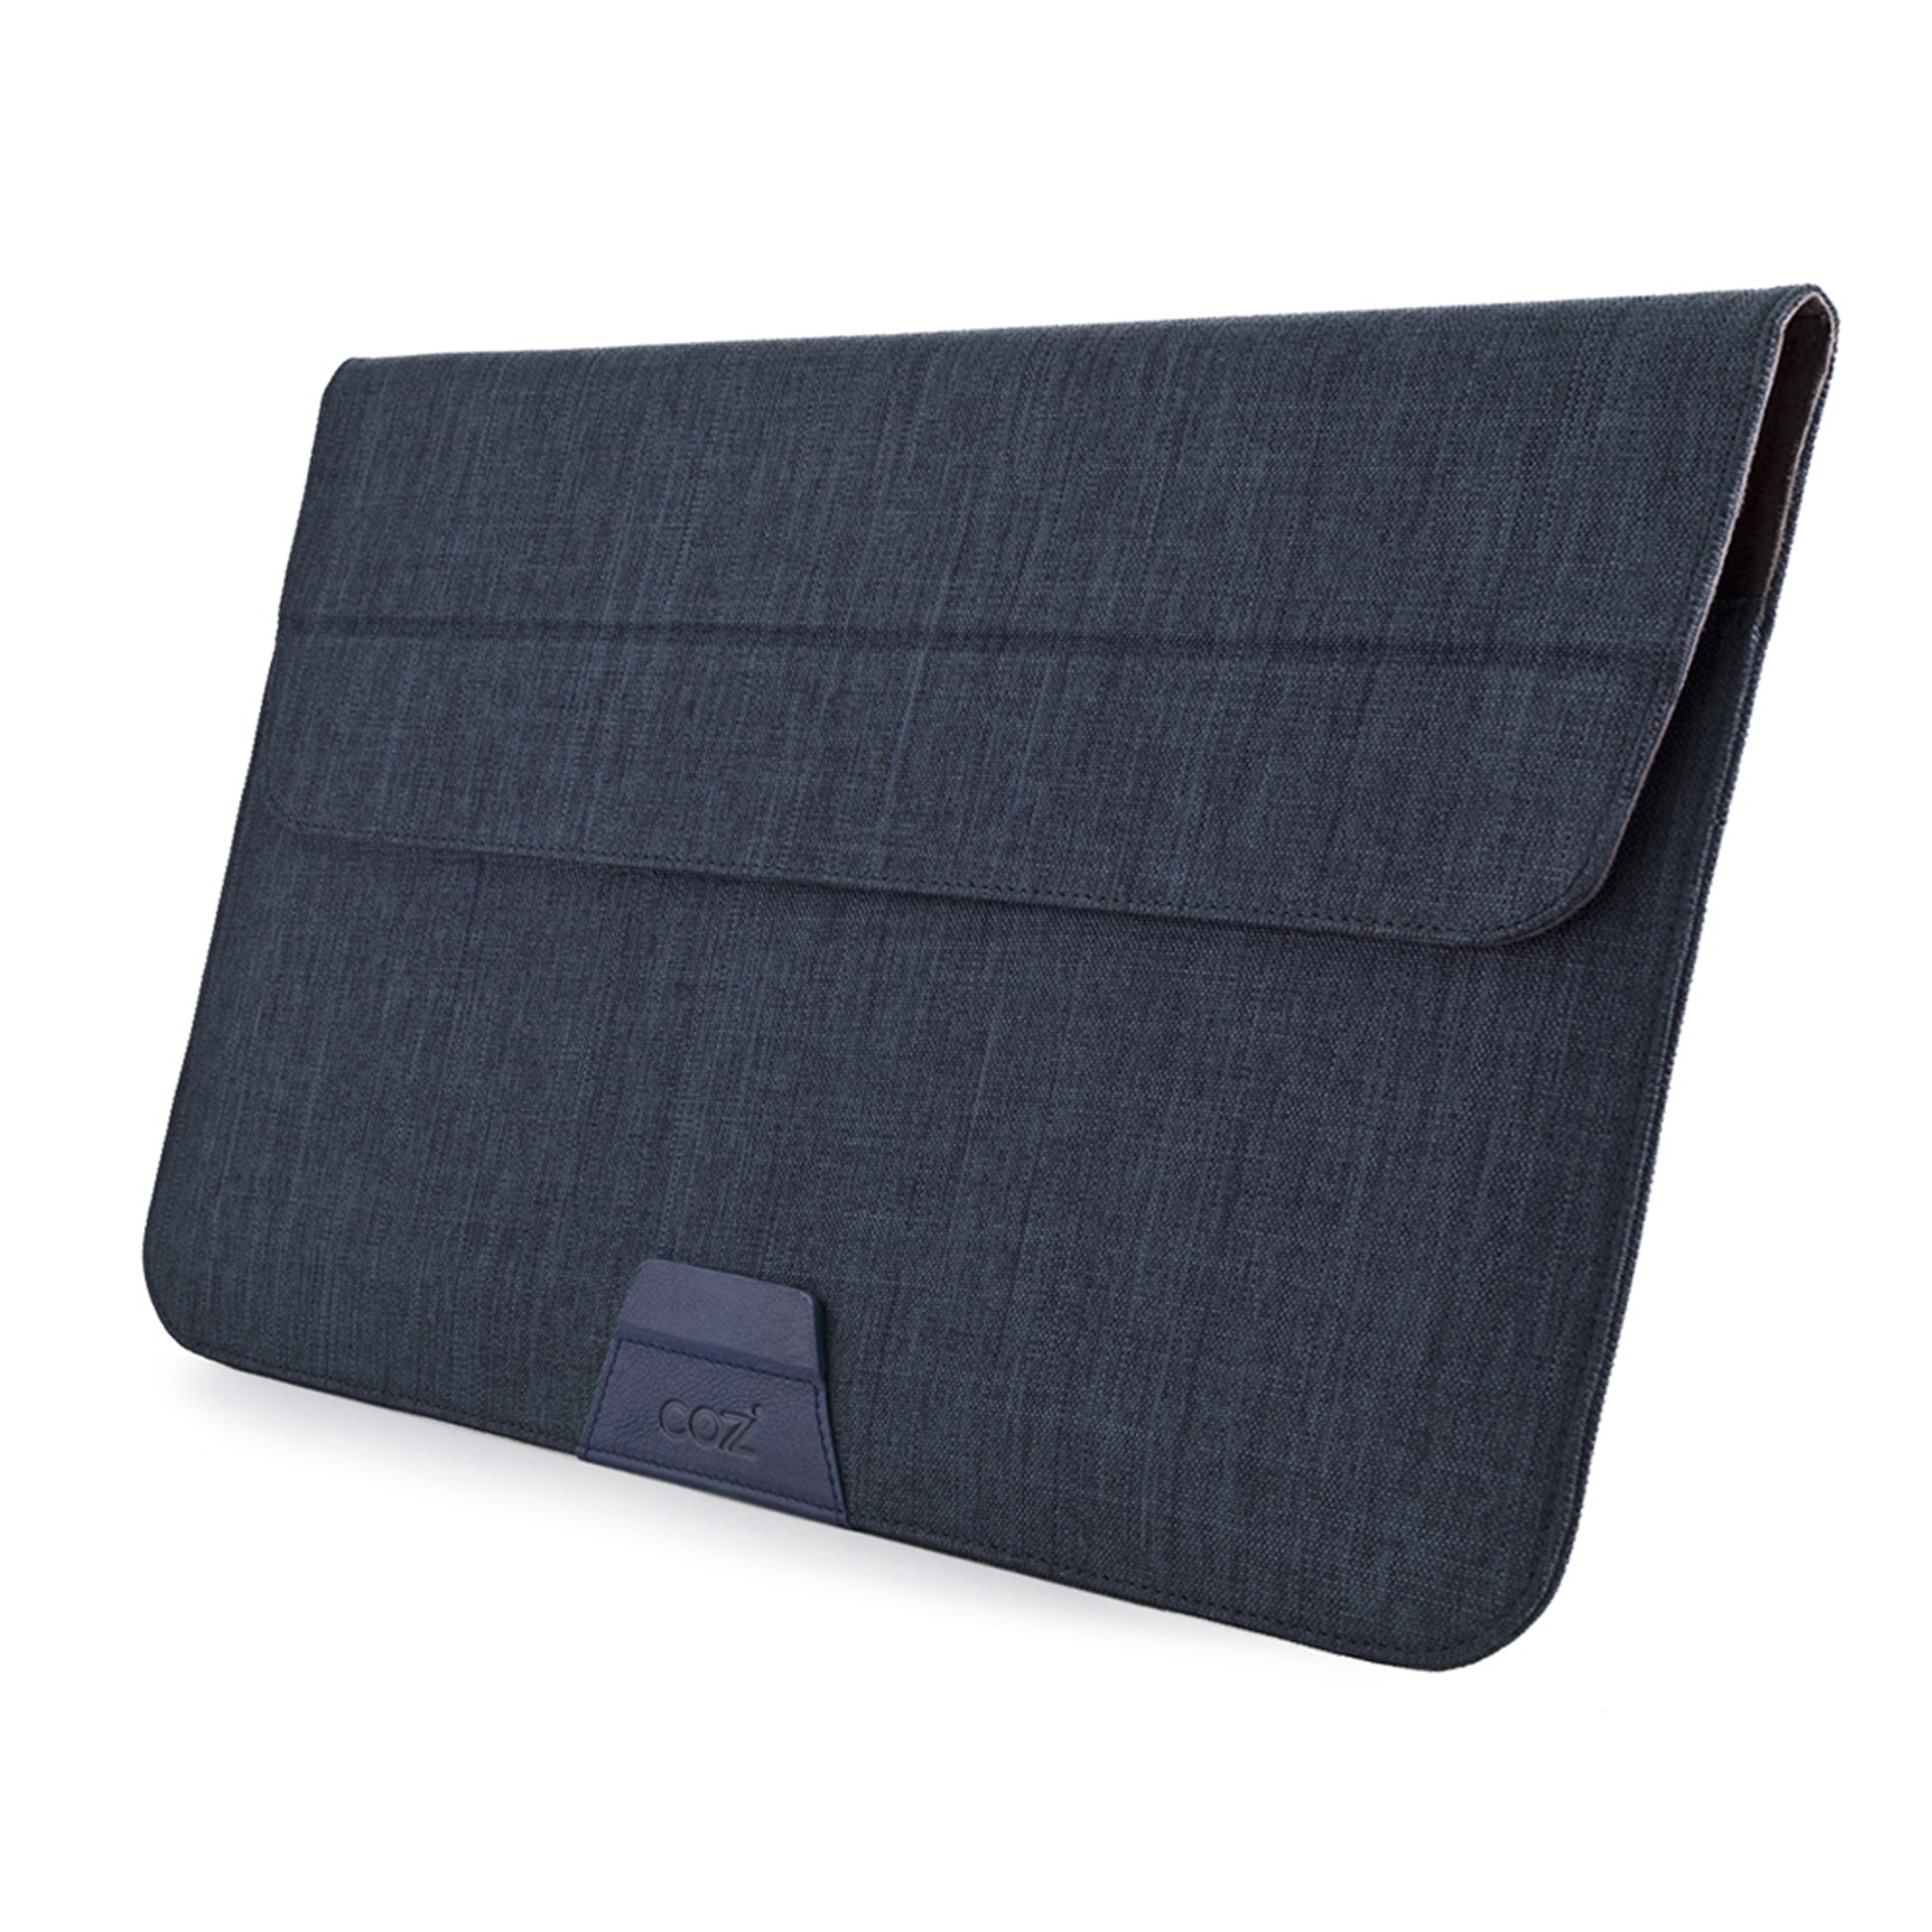 COZISTYLE - STAND SLEEVE POLY COLLECTION 13